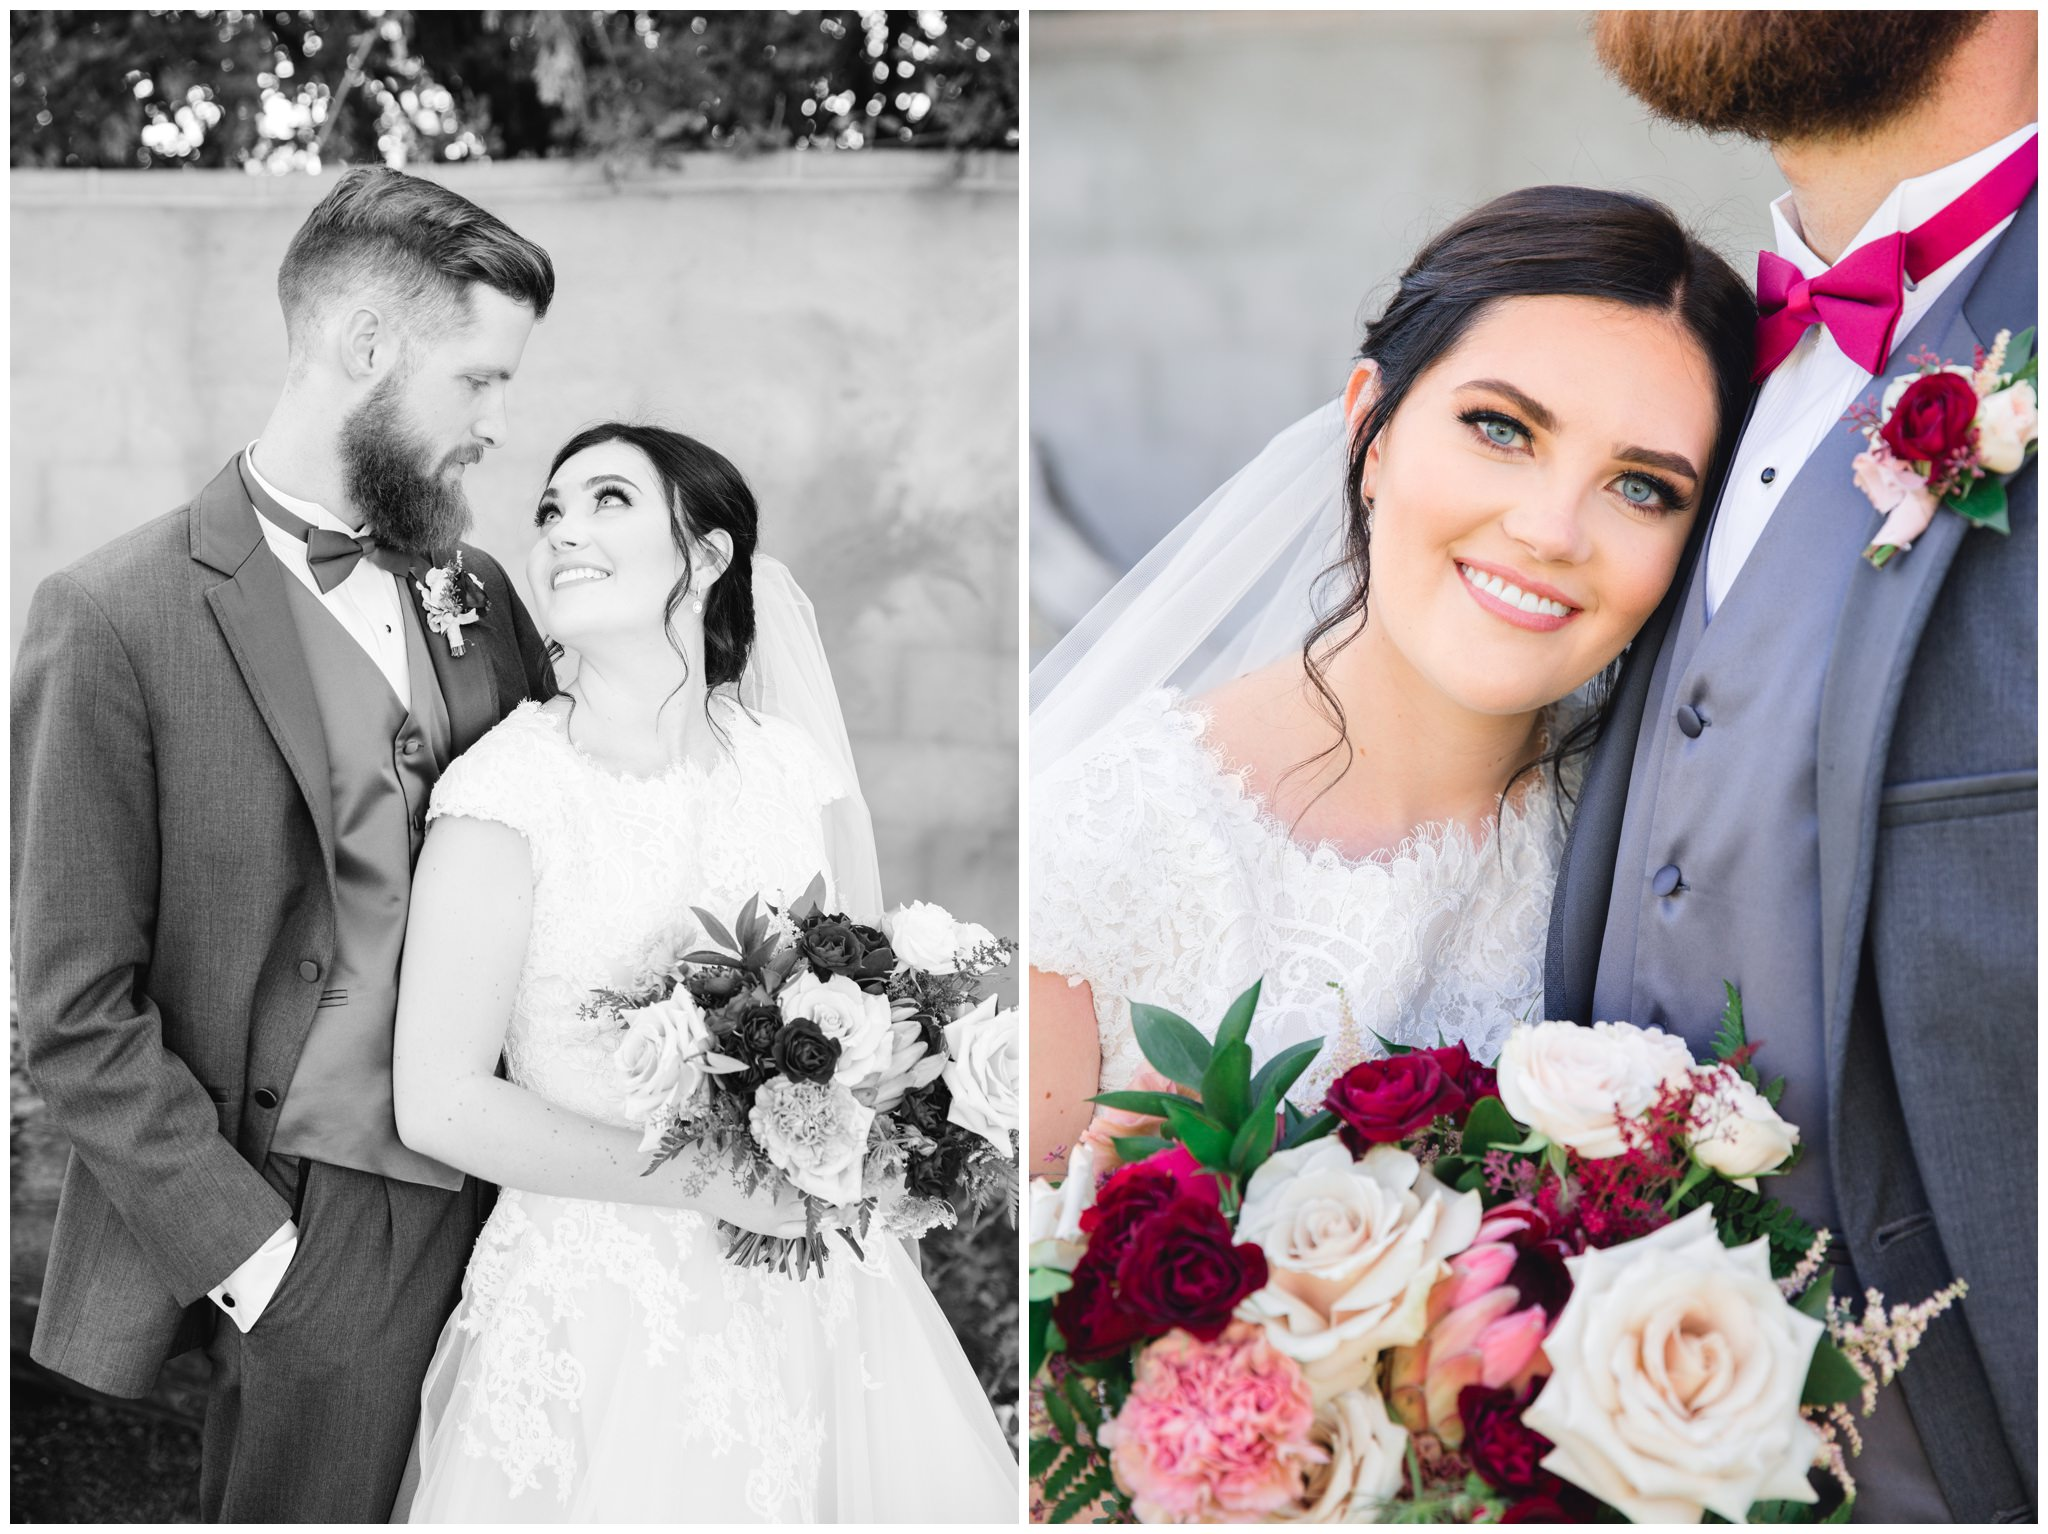 Bride and groom smiling at each other in their wedding pictures in Southern utah